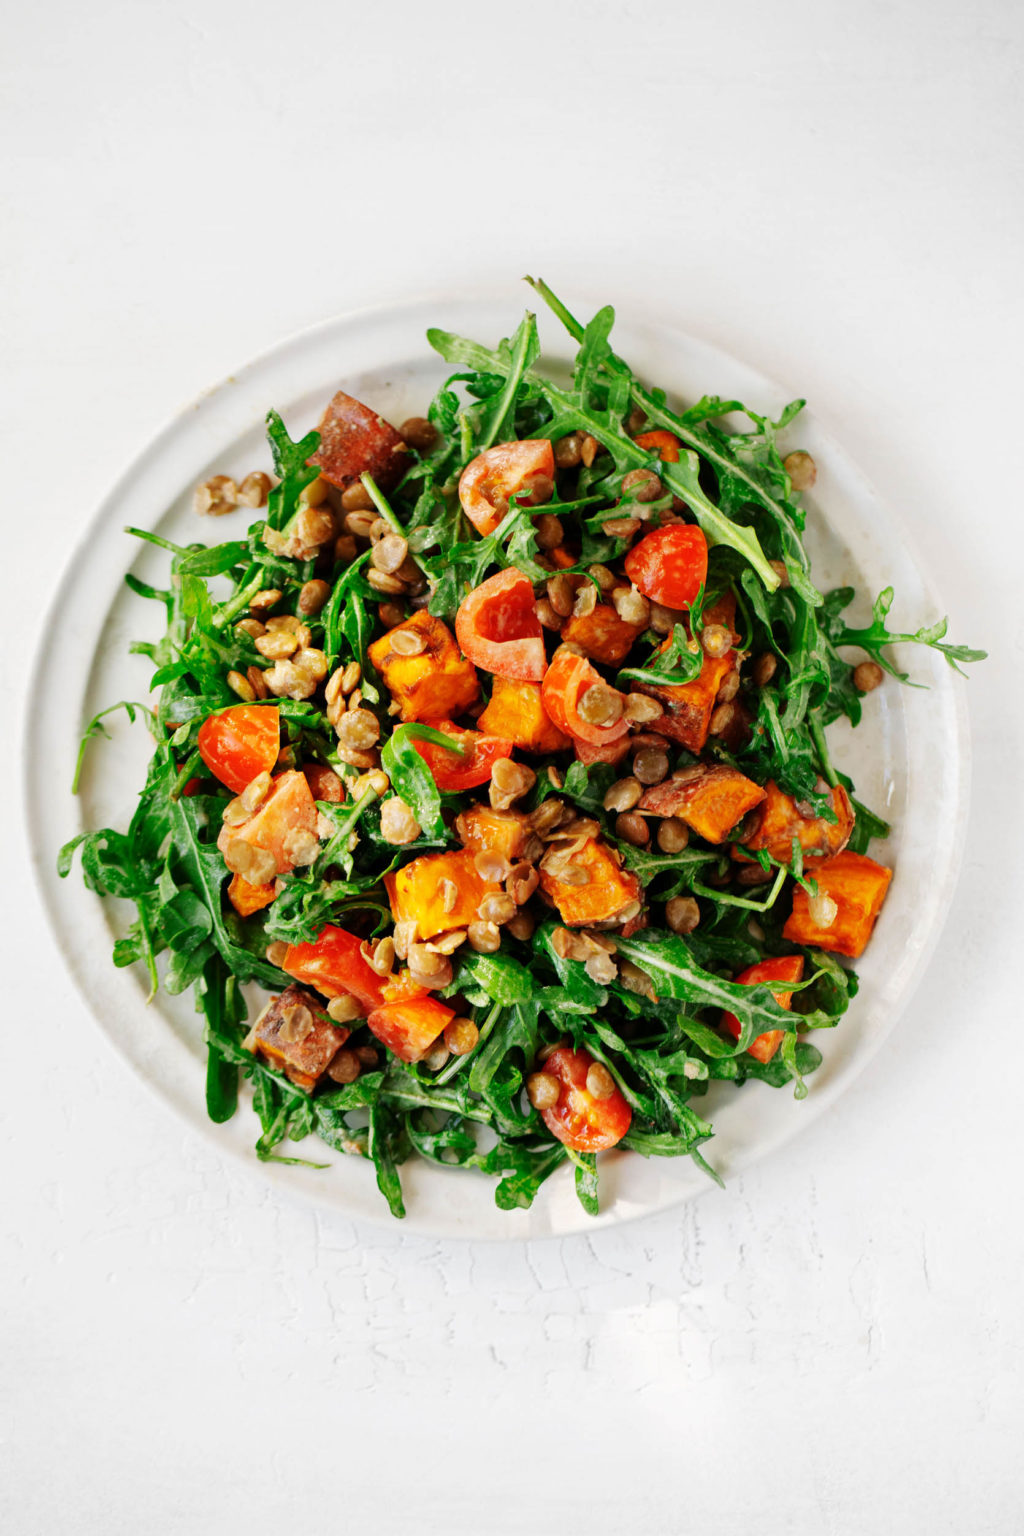 A round, white salad plate has been piled with arugula, sweet potatoes, grape tomatoes, lentils, and a creamy dressing.